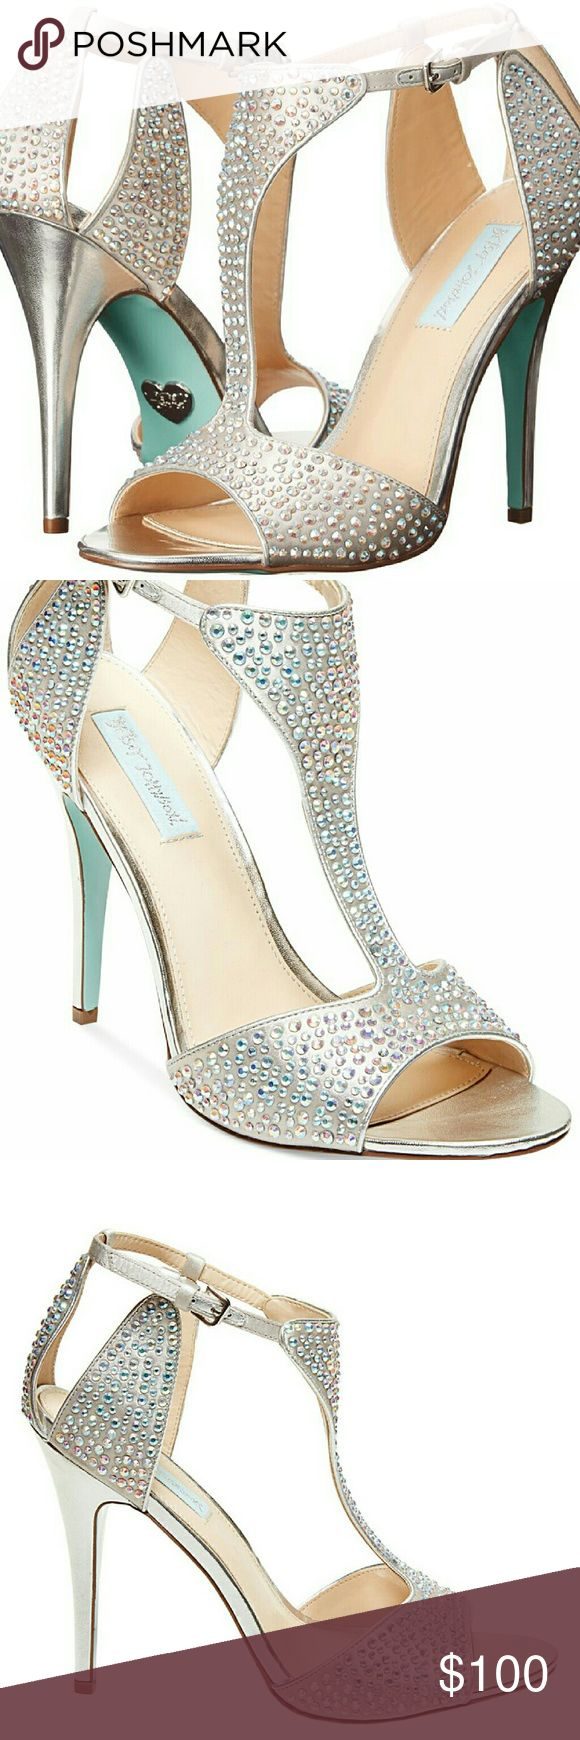 """Betsey Johnson Crystal Wedding Heels New in box, never worn. Blue by Betsey Johnson """" I Do"""" wedding heels. Silvery champagne color with iridescent rhinestone crystals. Size 8.   Open toe, adjustable ankle straps, 4"""" heels. More photos available, just ask! Betsey Johnson Shoes Heels"""